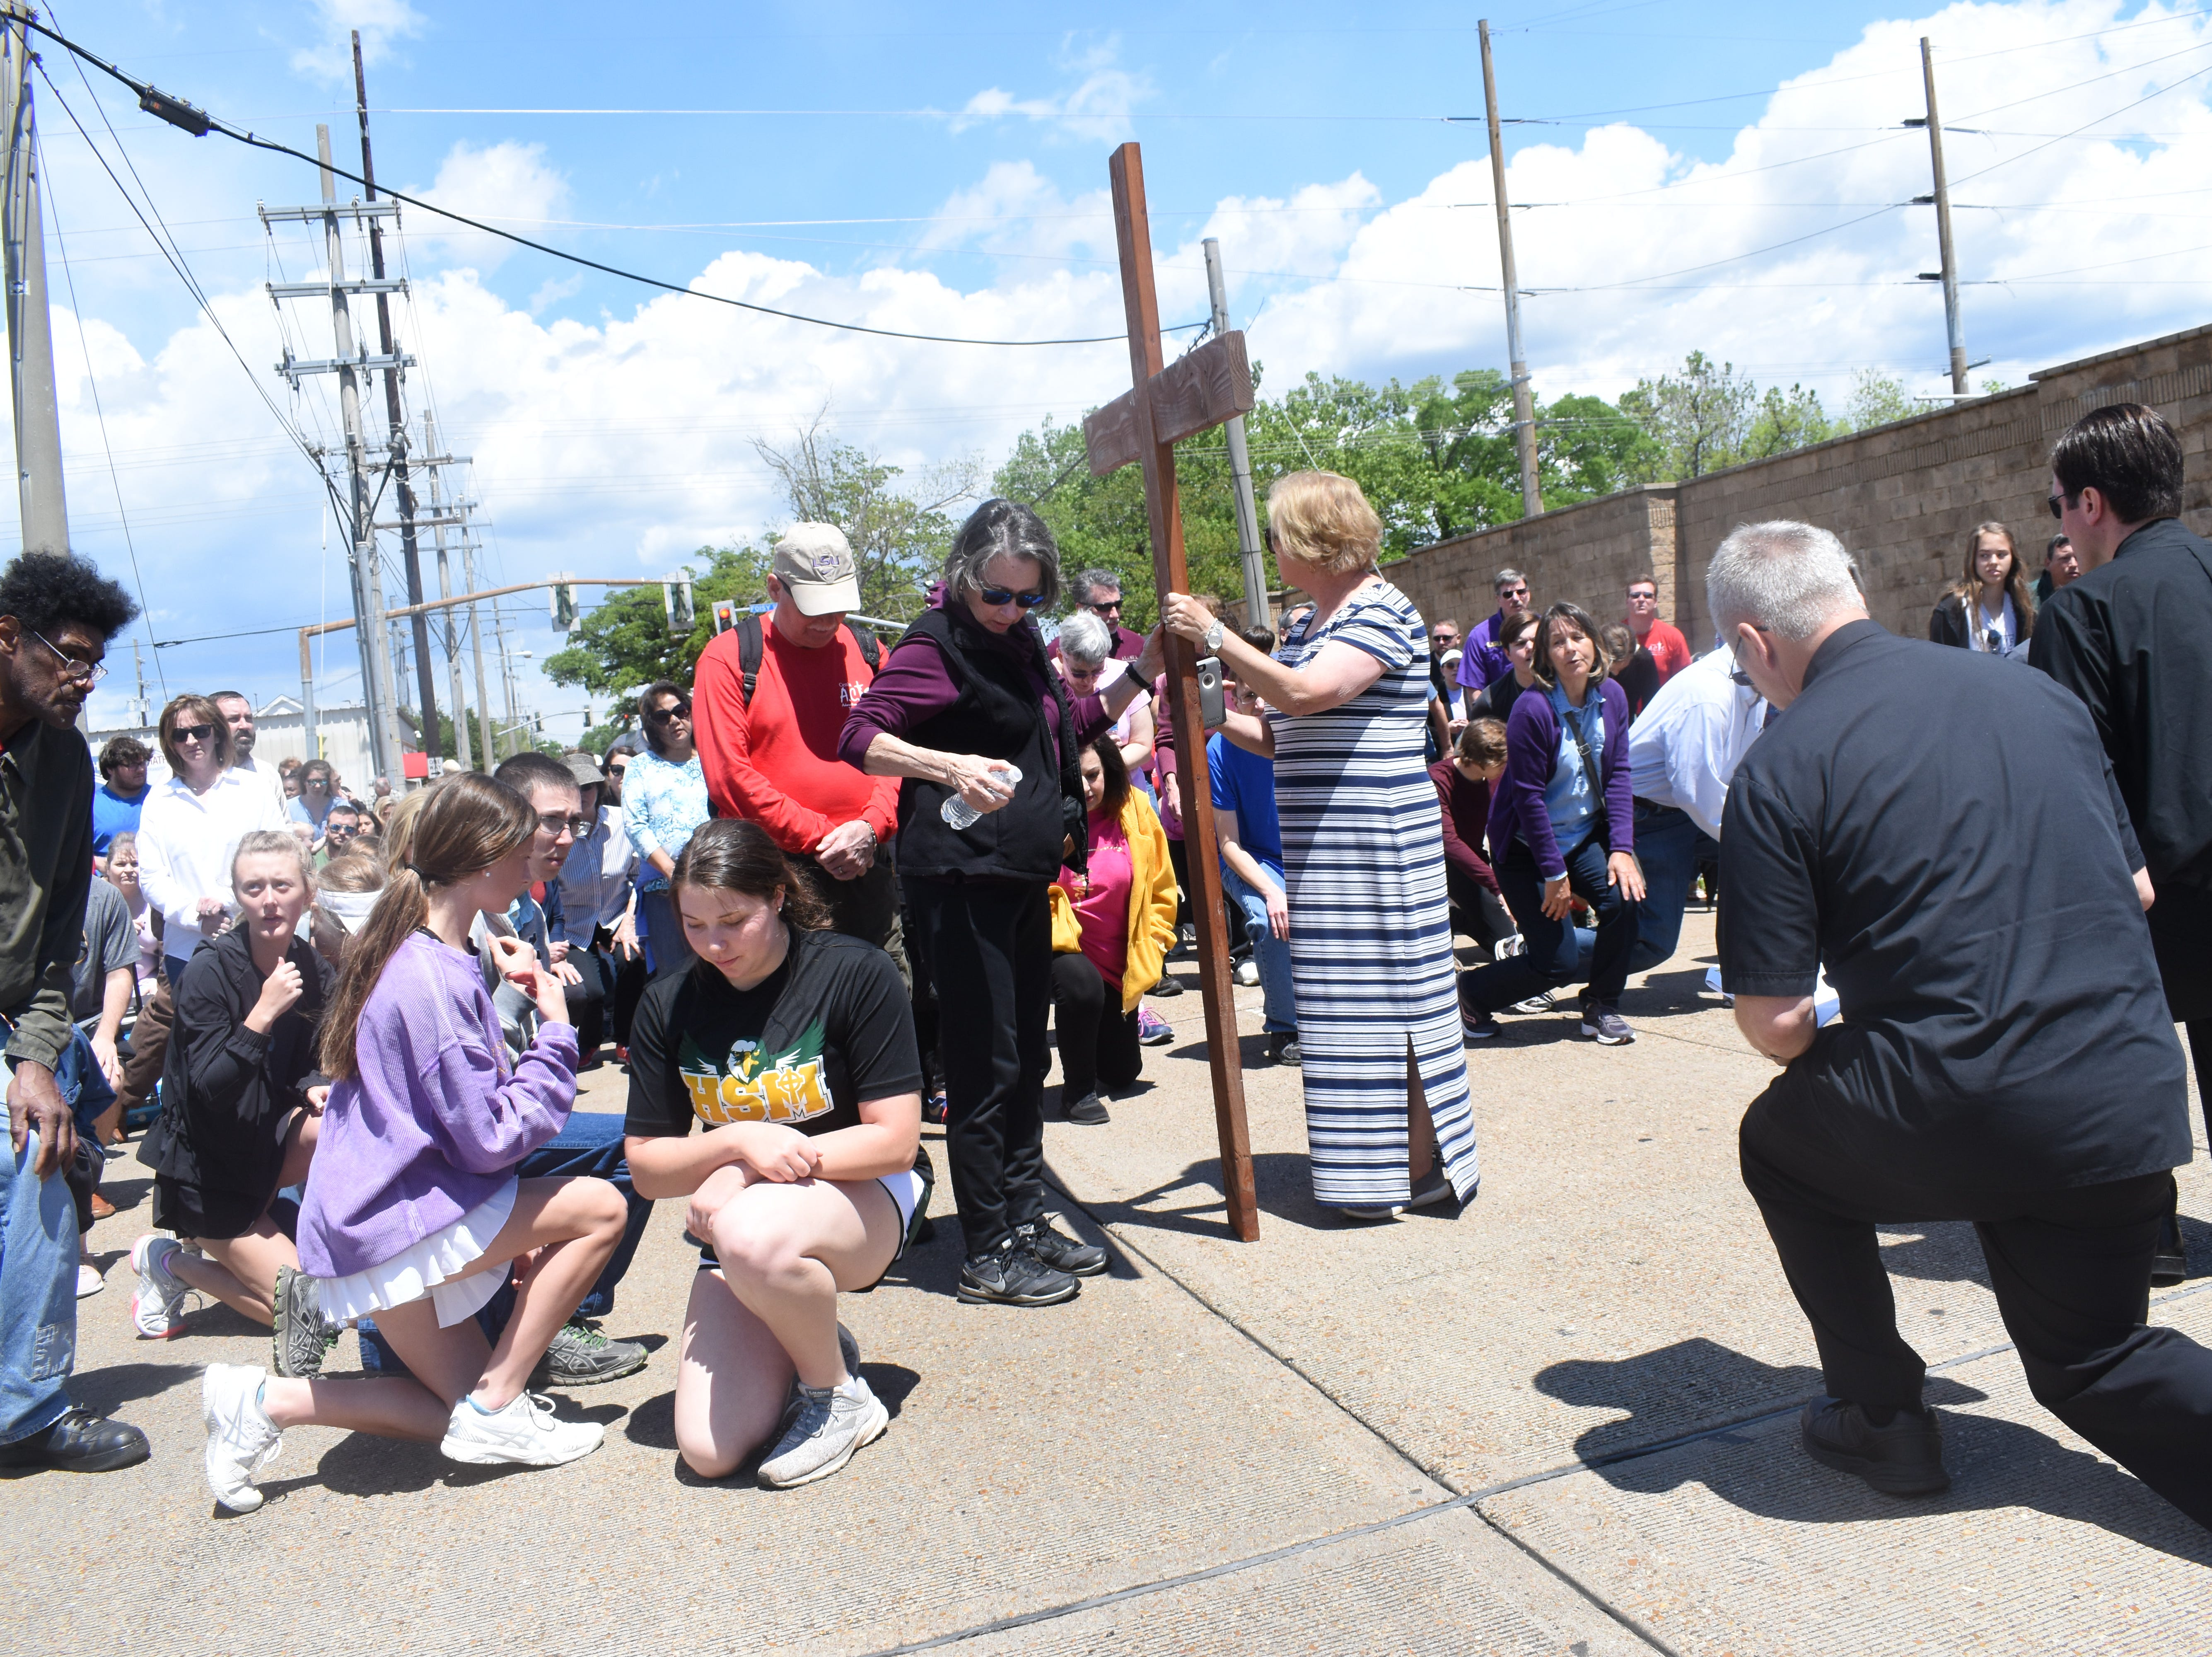 """Parishioners from the Catholic Diocese of Alexandria walk in the annual Passion Walk from St. Francis Xavier Cathedral on Fourth Street in downtown Alexandria to Our Lady of Prompt Succor Church on Elliott Street on Friday, April 19, 2019. The Friday before Easter is observed as Good Friday which is the day Christians observe as the Crucifixion of Jesus Christ. As parishioners walked, they stopped to pray at each of the 14 Stations of the Cross. Each station depicted the 14 events from Jesus Christ's last day on Earth. Father Dan O'Connor, pastor of Our Lady of Prompt Succor, said pausing at each station is a way to meditate on the """"things that happened to Jesus on the way to Calvary."""" Calvary is a hill near Jerusalem is where the Crucifixion took place.""""It's good for us to take some time today to remember Jesus' sacrifice for us so we could be forgiven of our sins,"""" said O'Connor."""